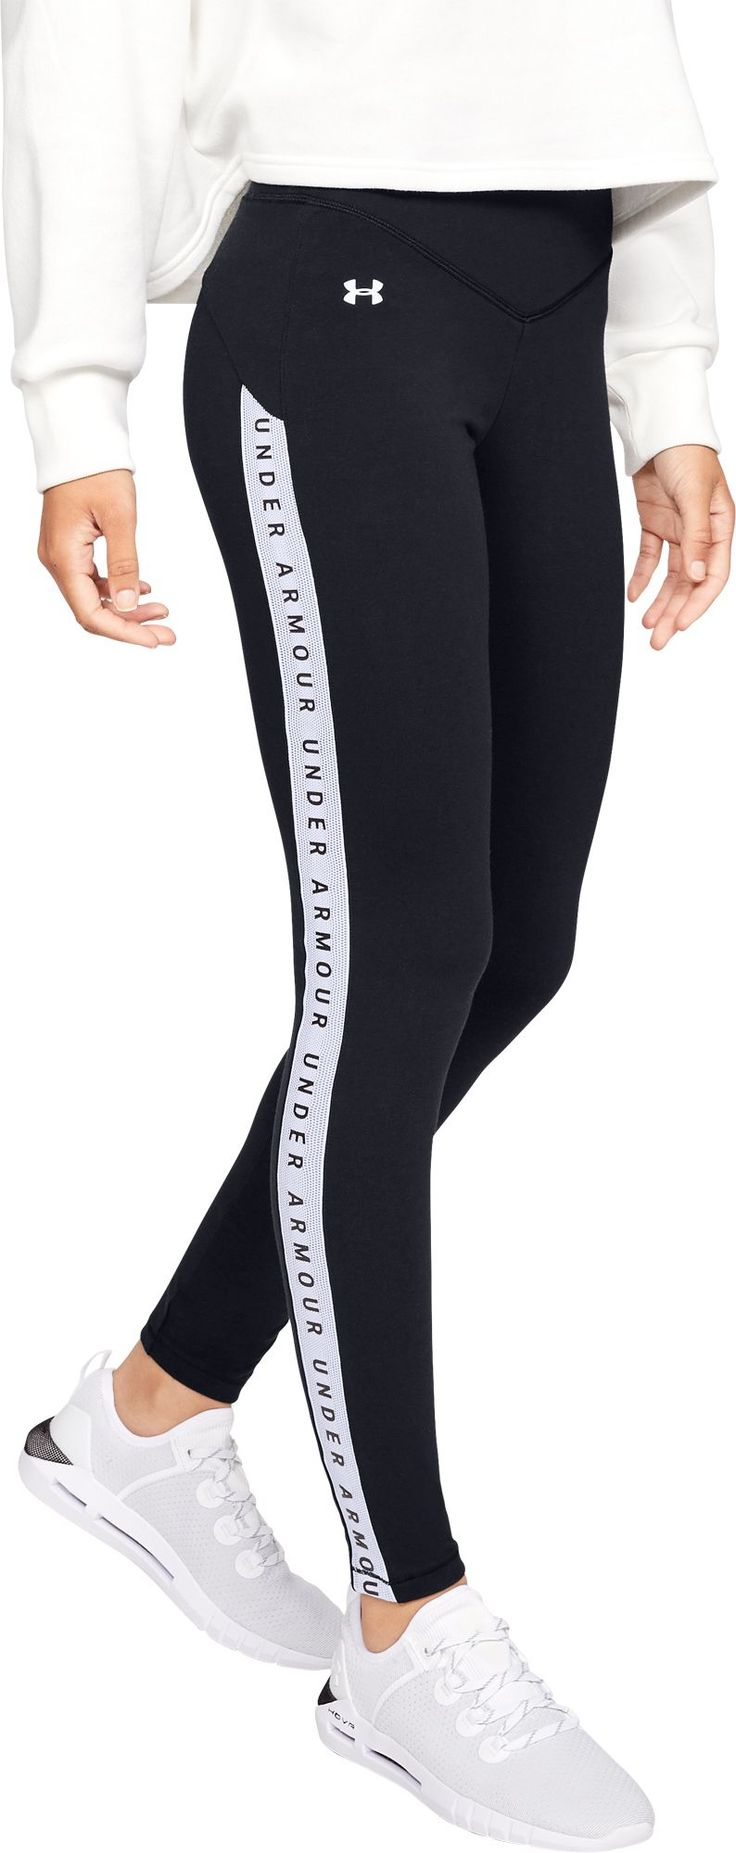 Under Armour Women's Taped Favorite Leggings, Size: XS, Black 1